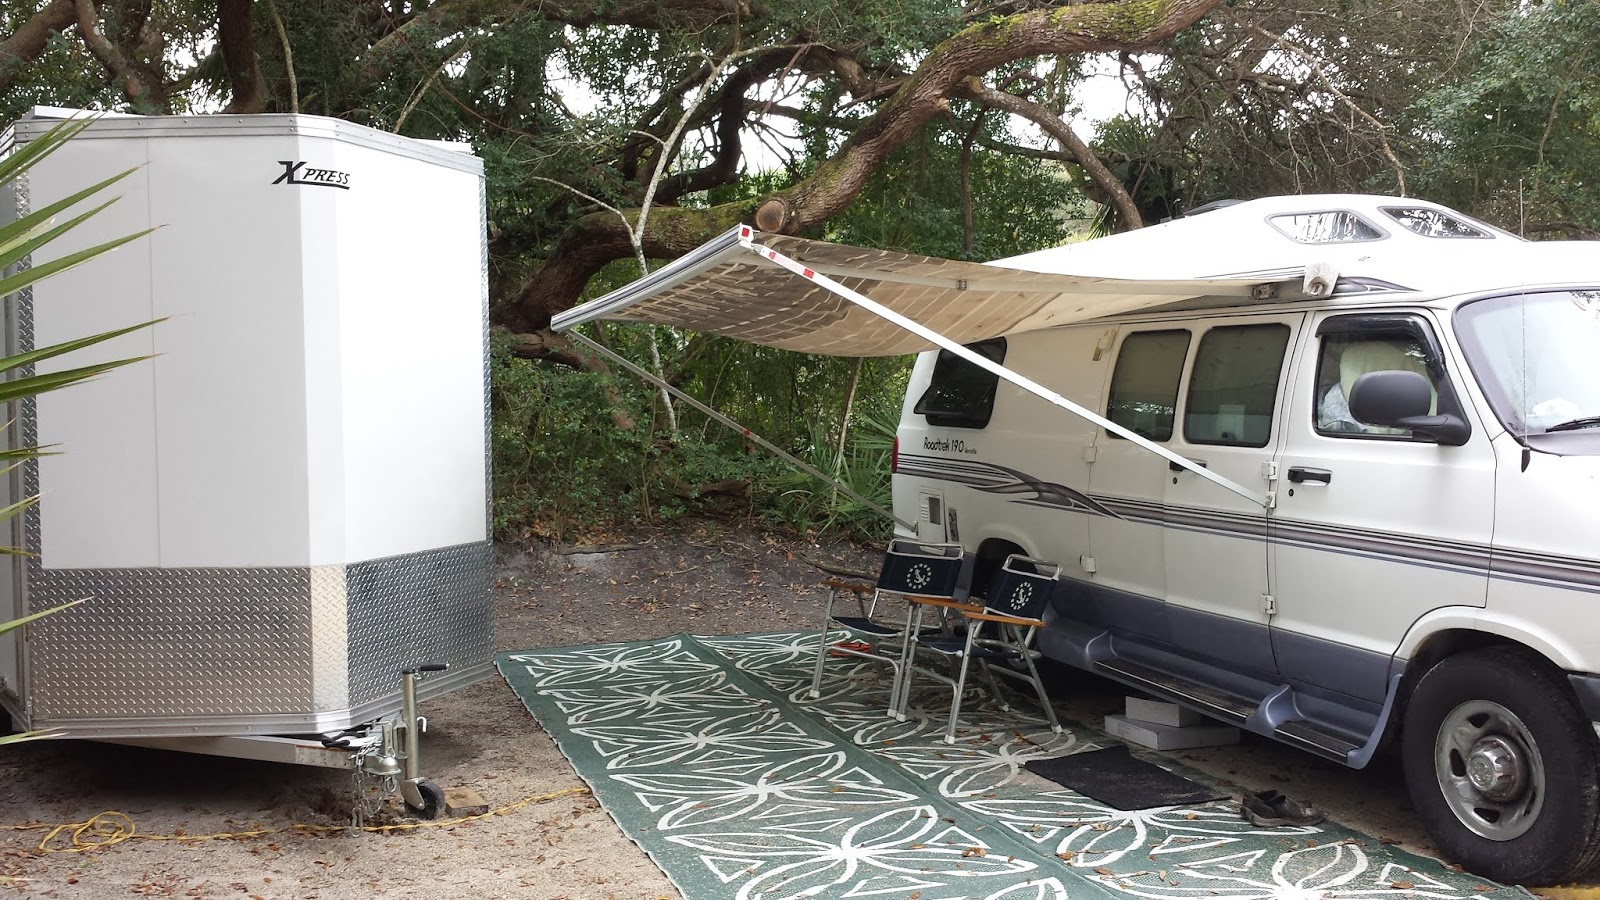 Solowomanrv How Do I Deal With Electrical Problems In A Mobile Home Yahoo To Volunteer 5 Per Year Support Of This Blog Kindly Use Your Paypal Account Send Janetgroene At Yahoocom